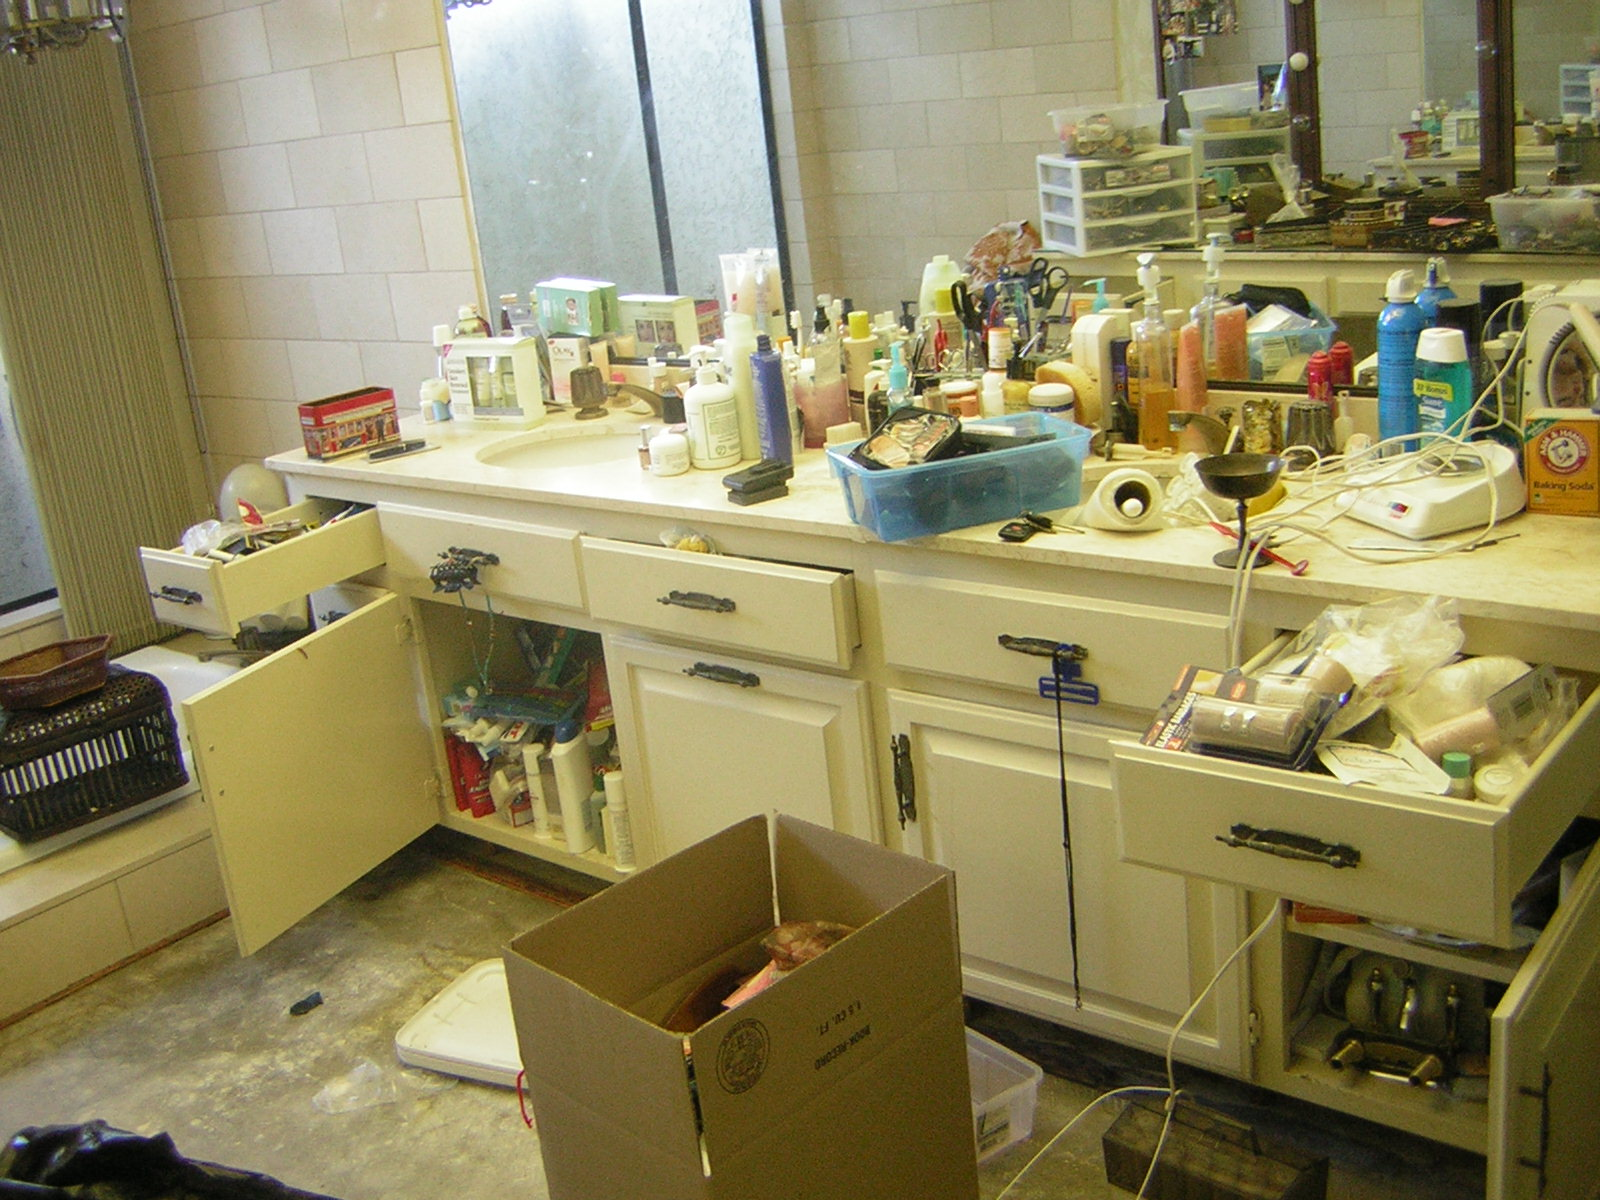 And clutter in this particular bathroom was a product of many factors